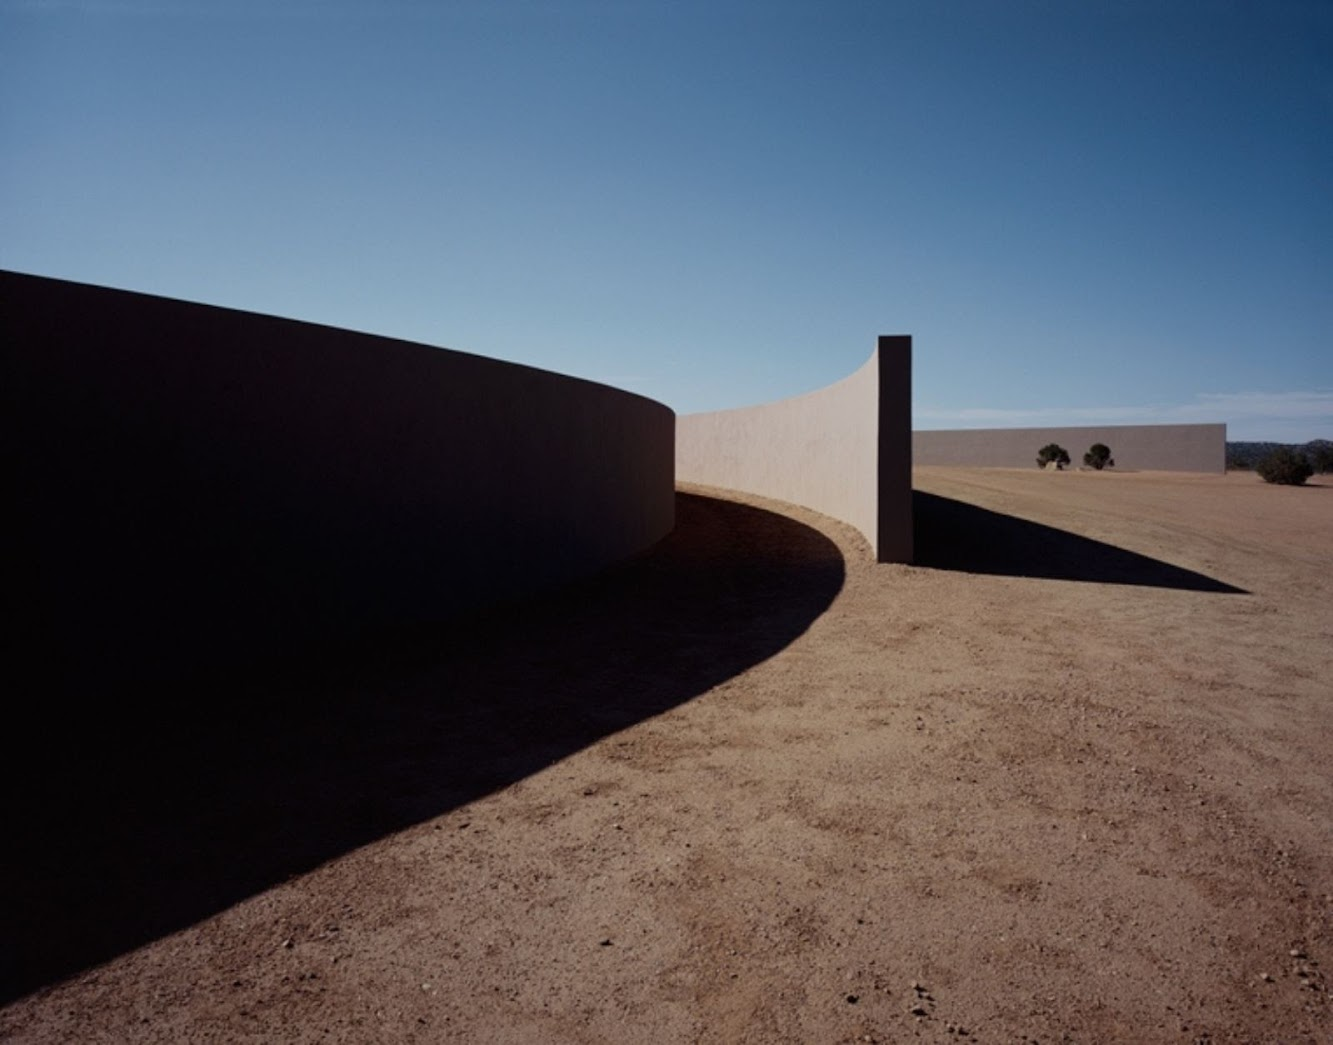 04-Tom-Ford's-Ranch-by-Tadao-Ando